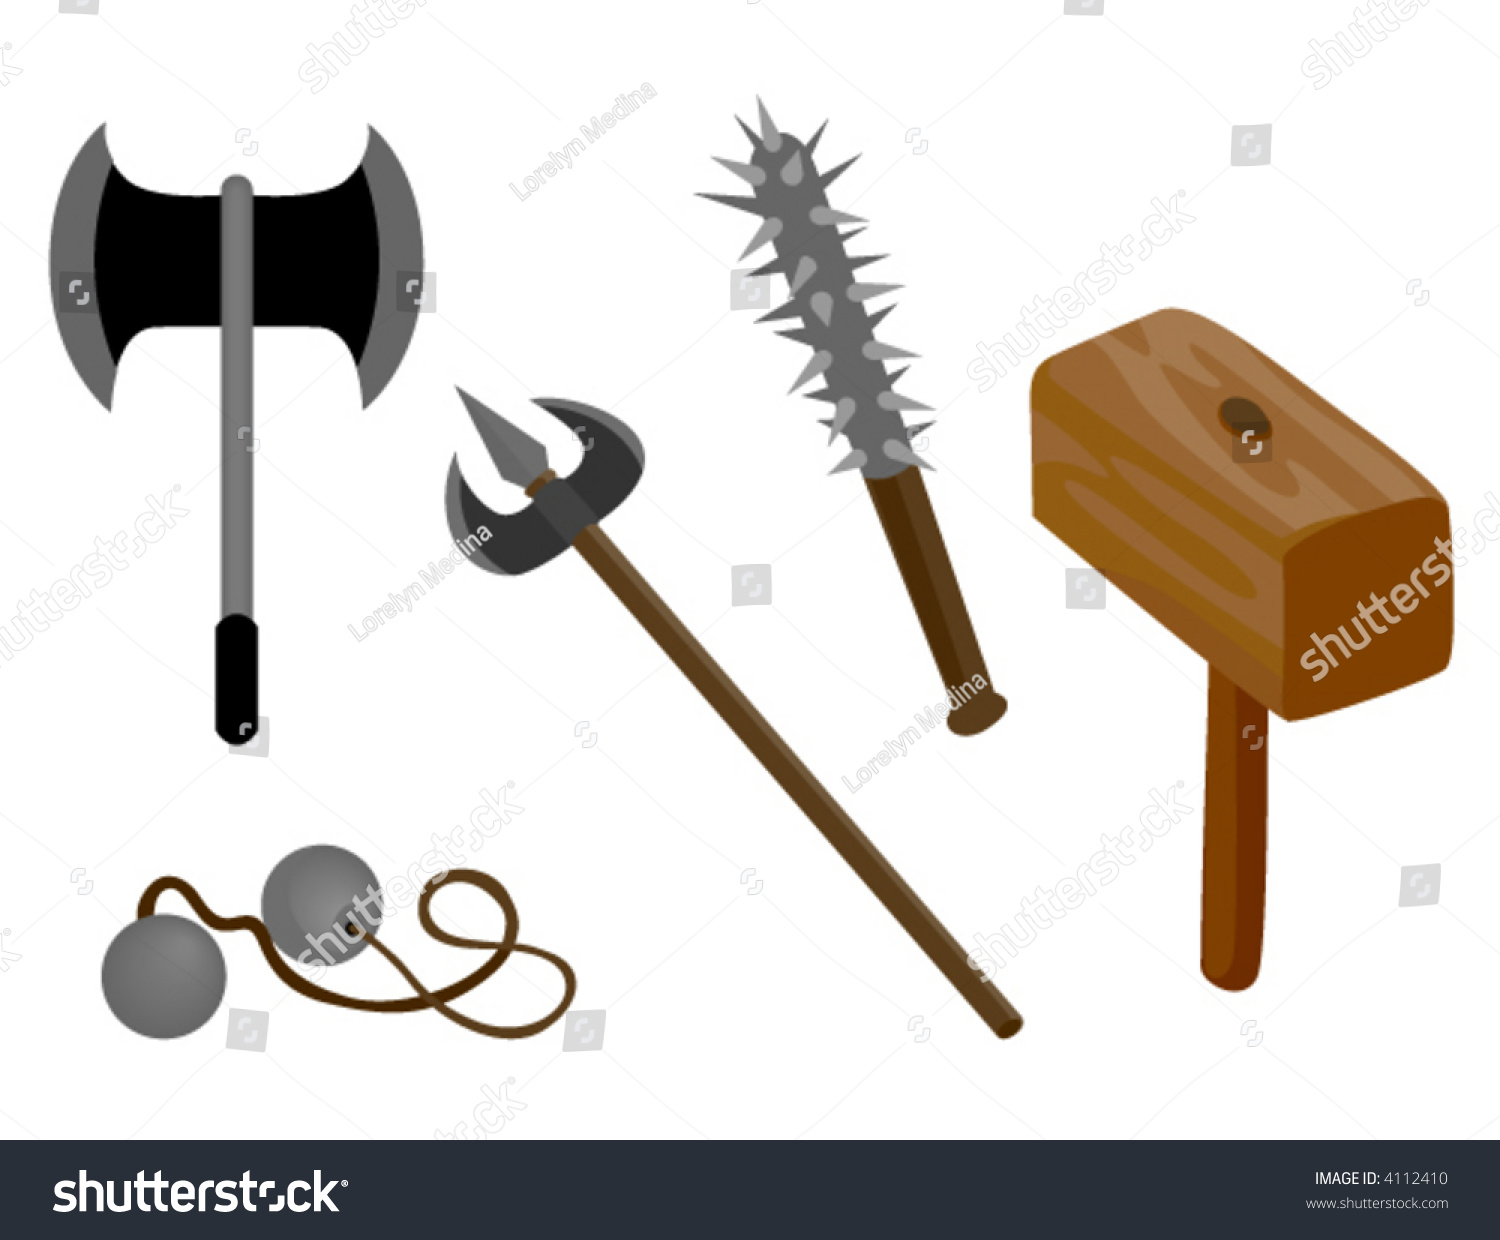 war weapons clipart - photo #36